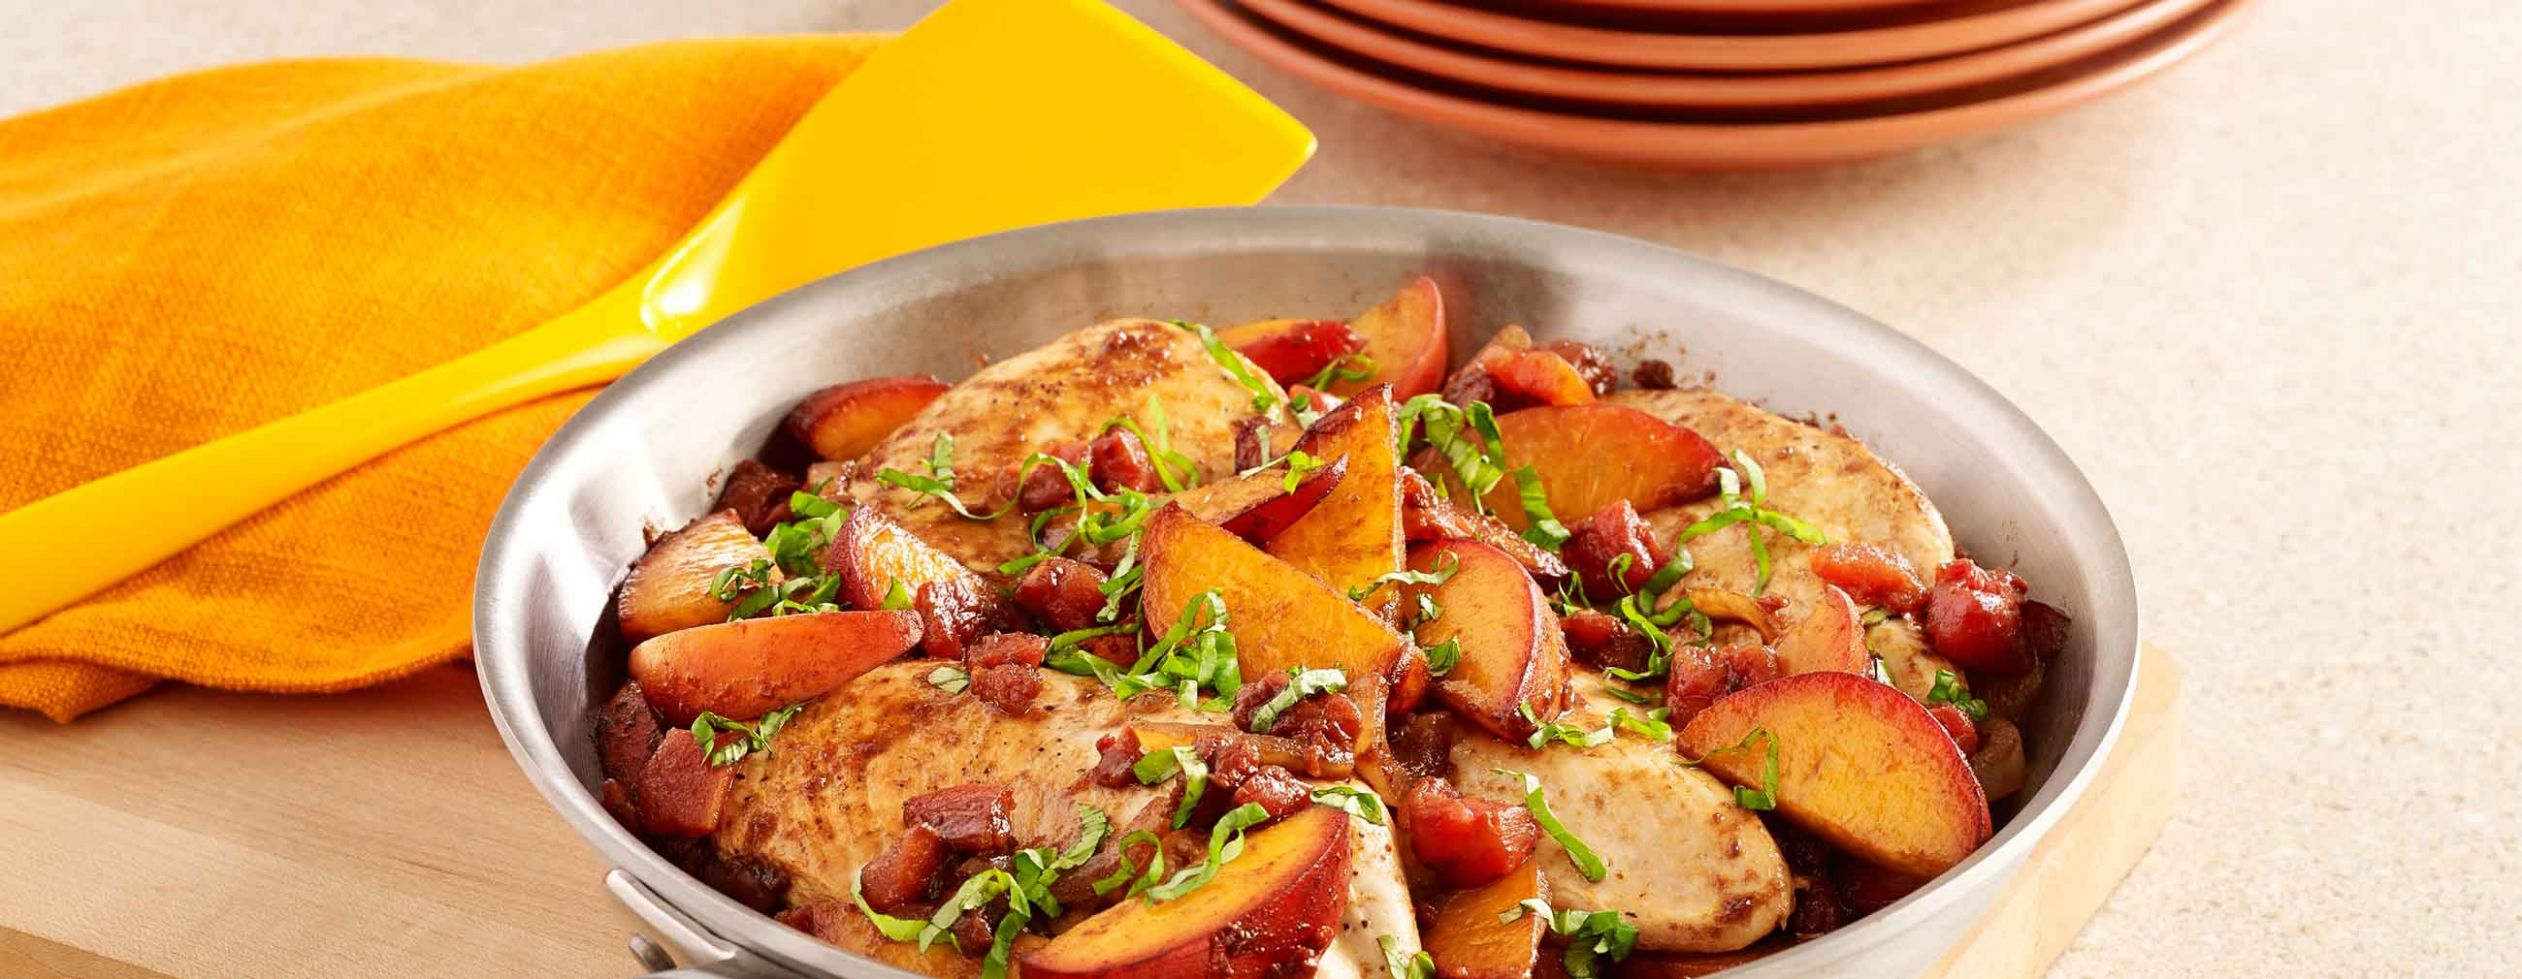 Peach Balsamic Chicken Skillet - Recipes Chicken With Peaches